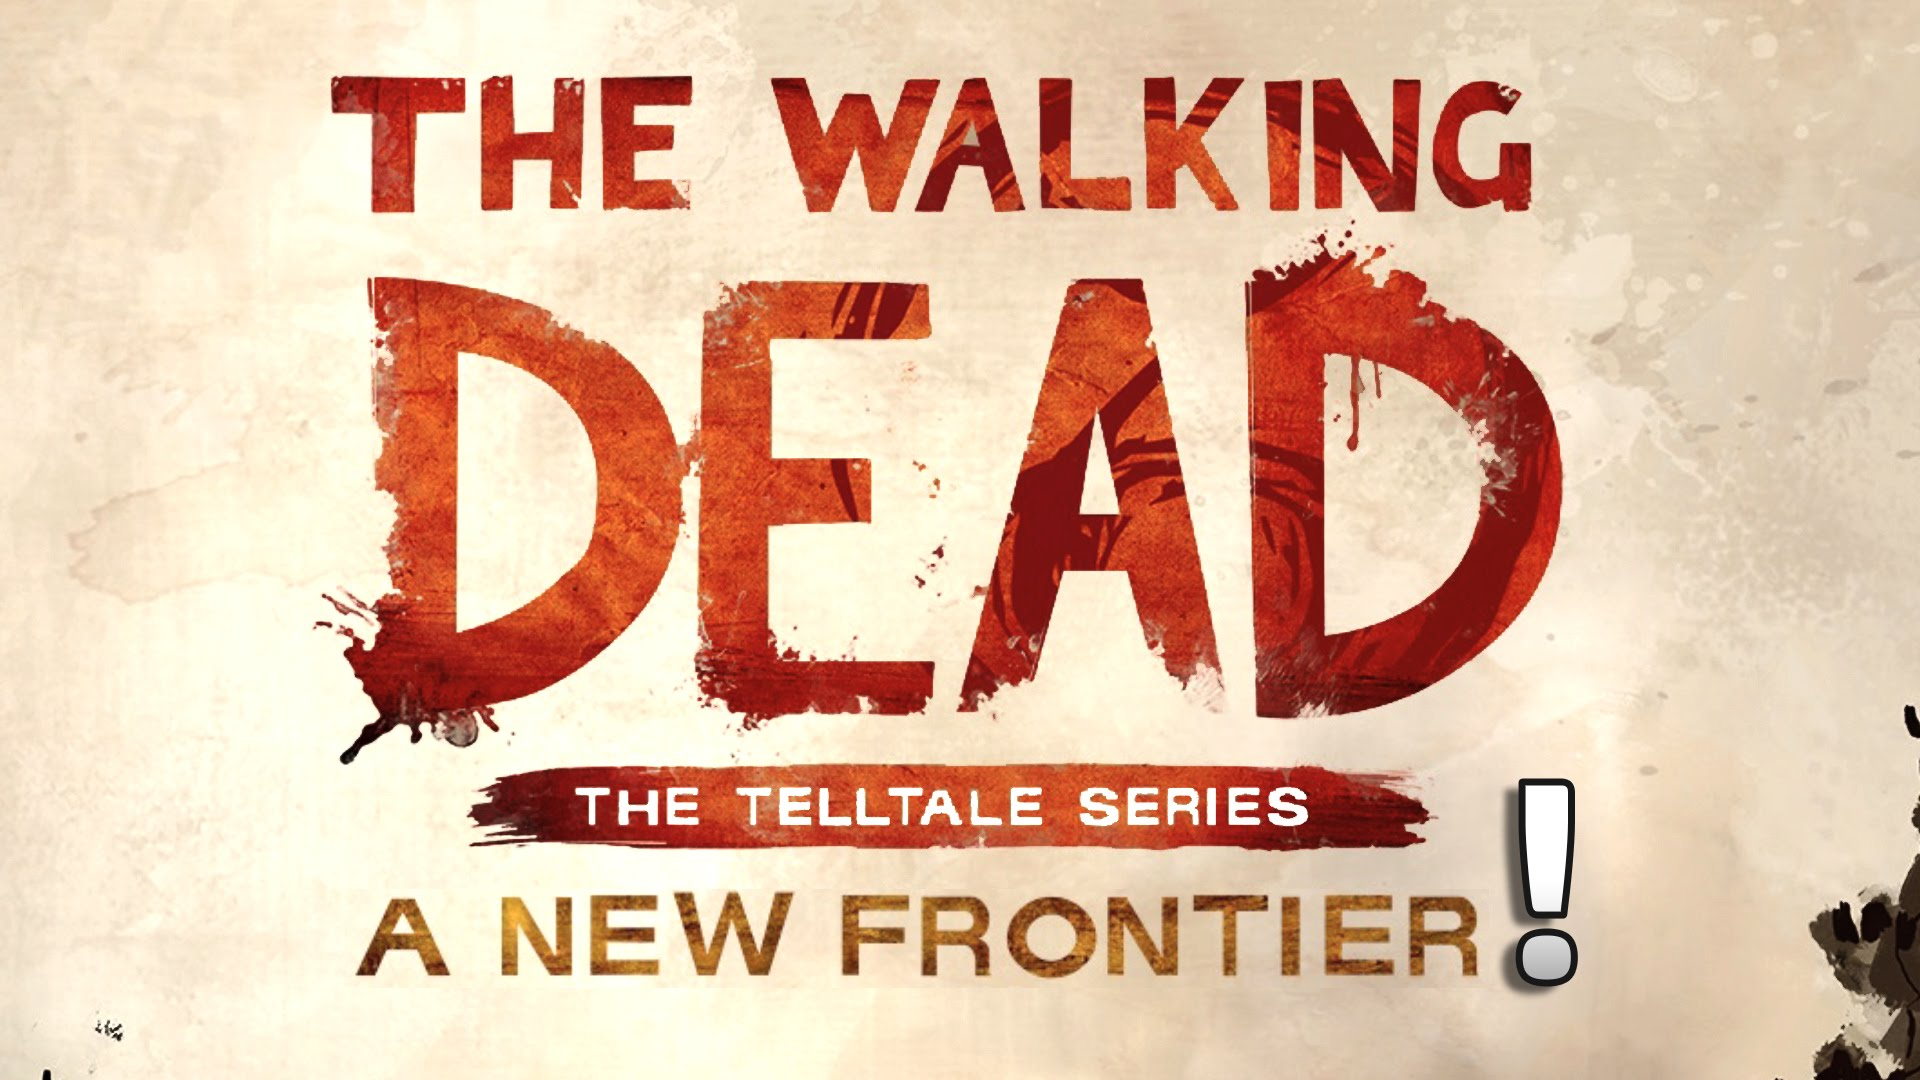 The Walking Dead- The Telltale Series - A New Frontier